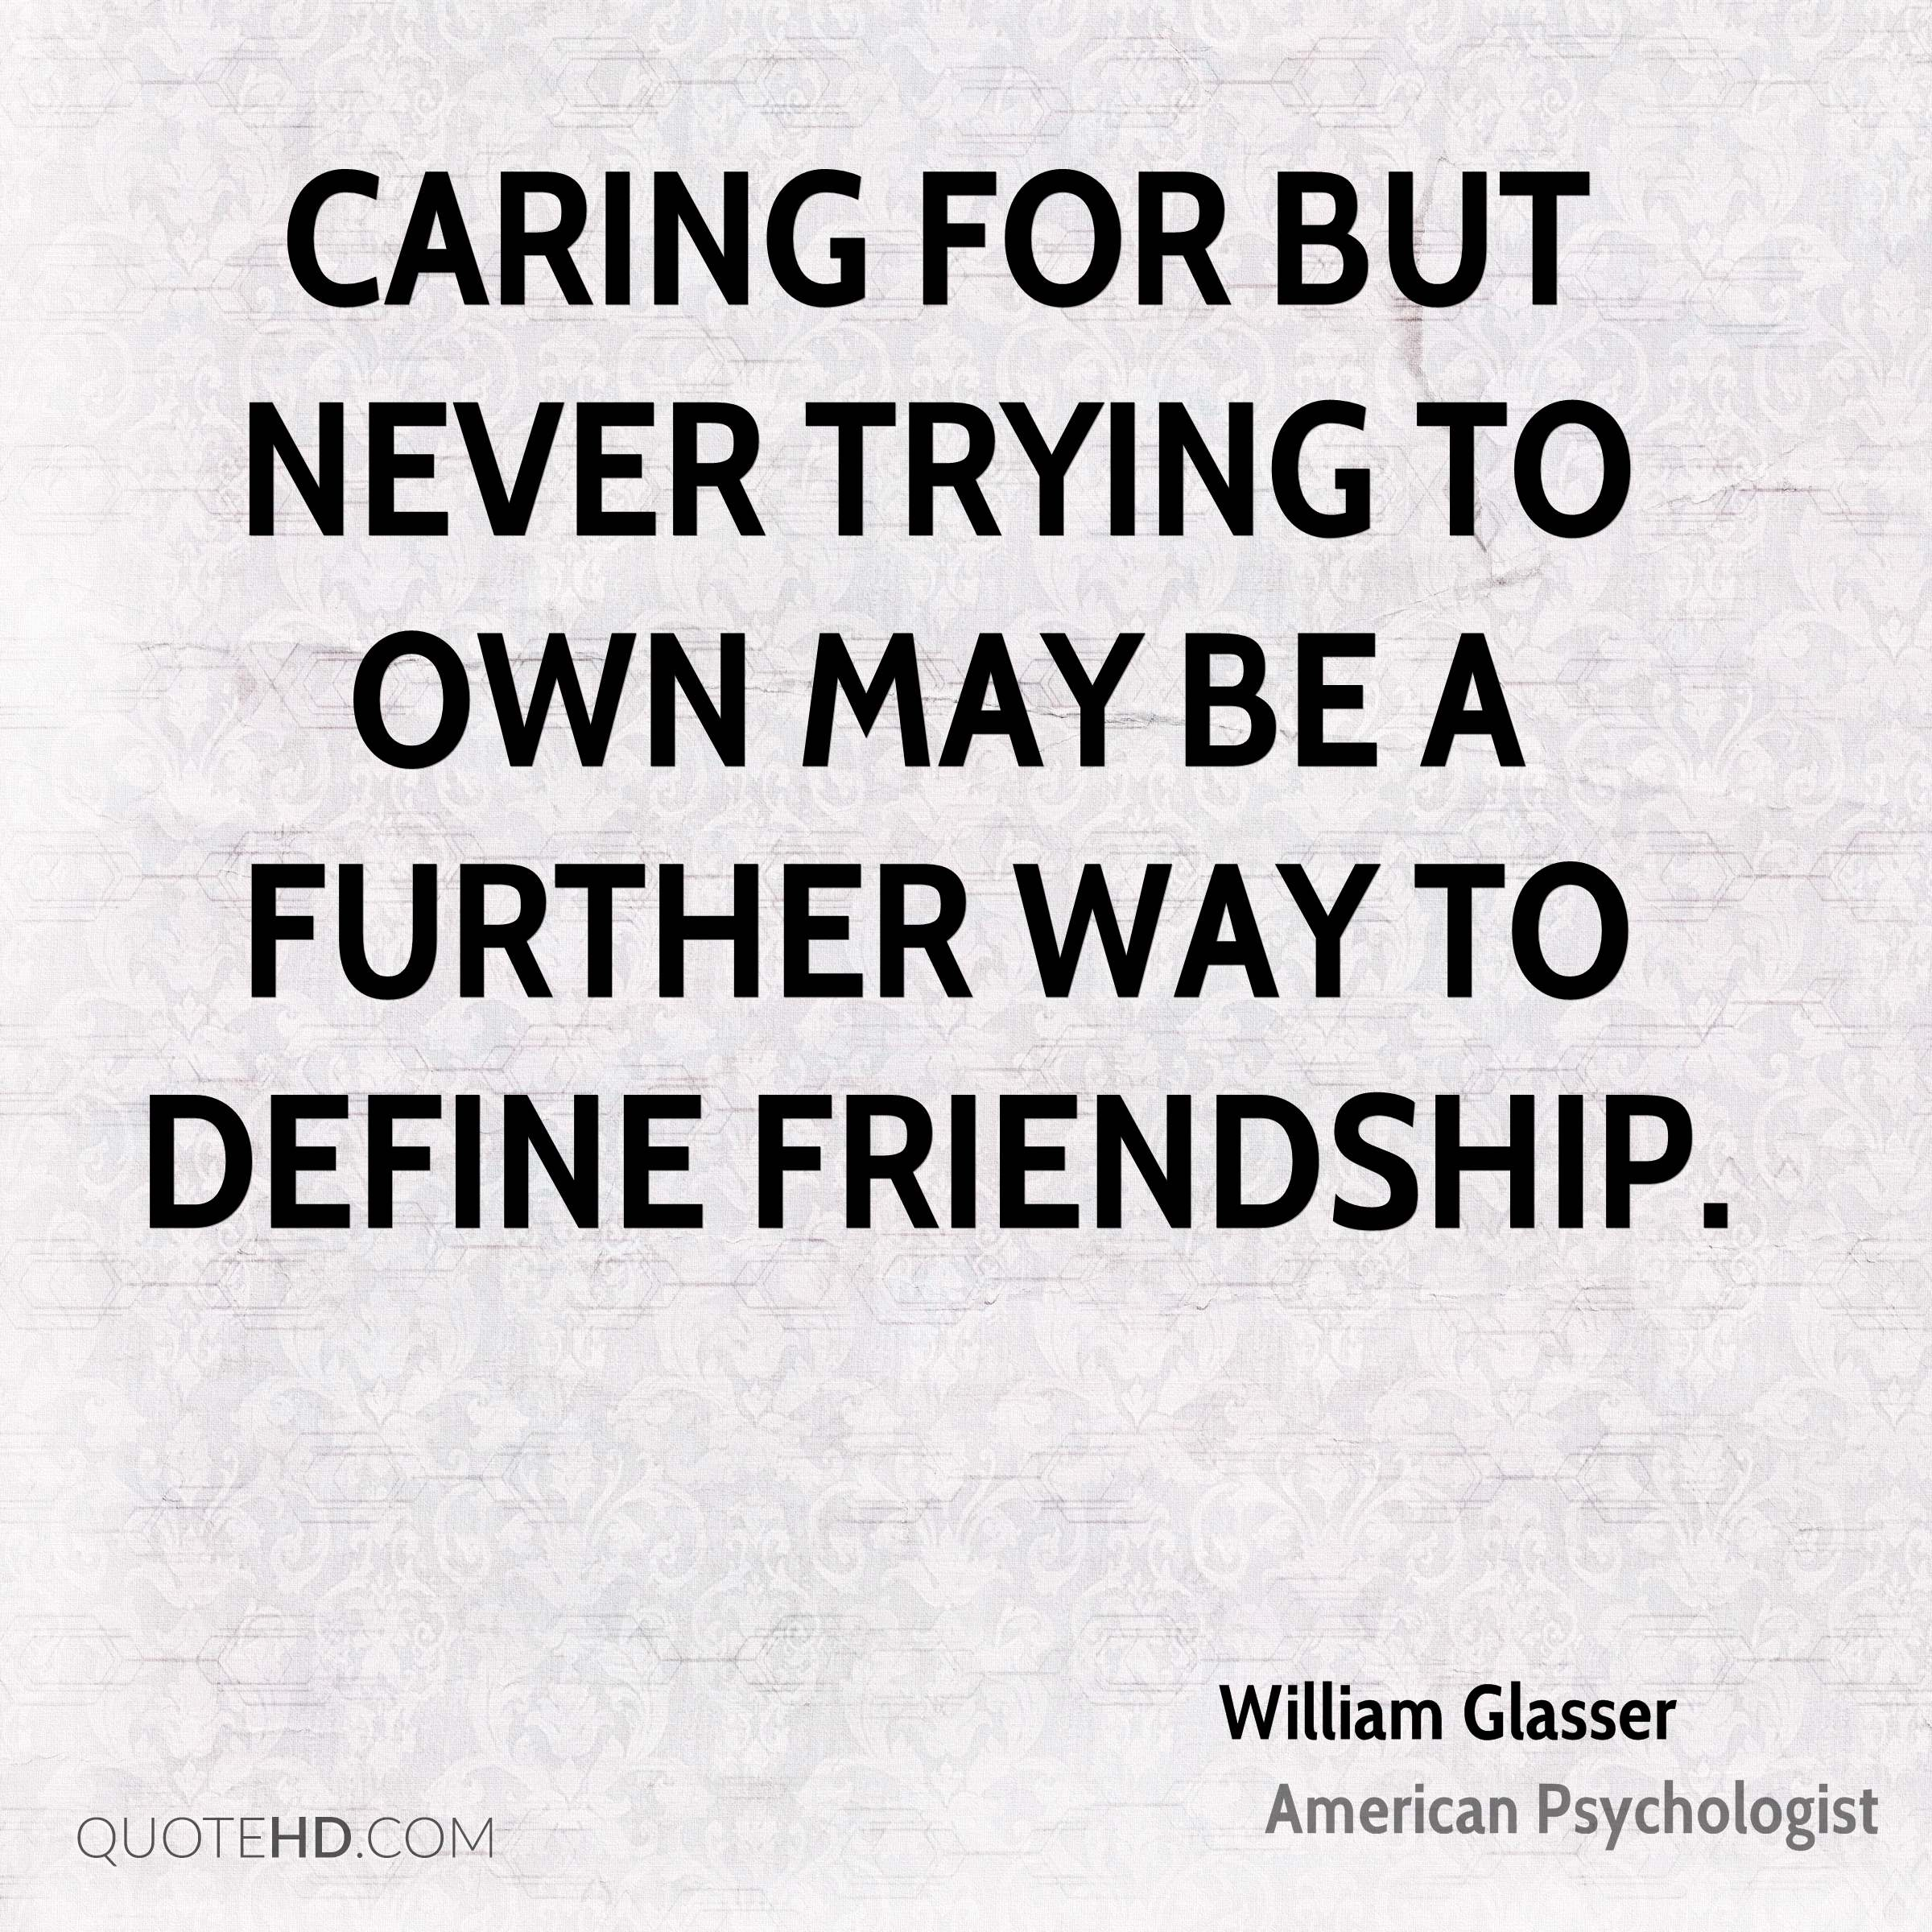 Caring for but never trying to own may be a further way to define friendship.